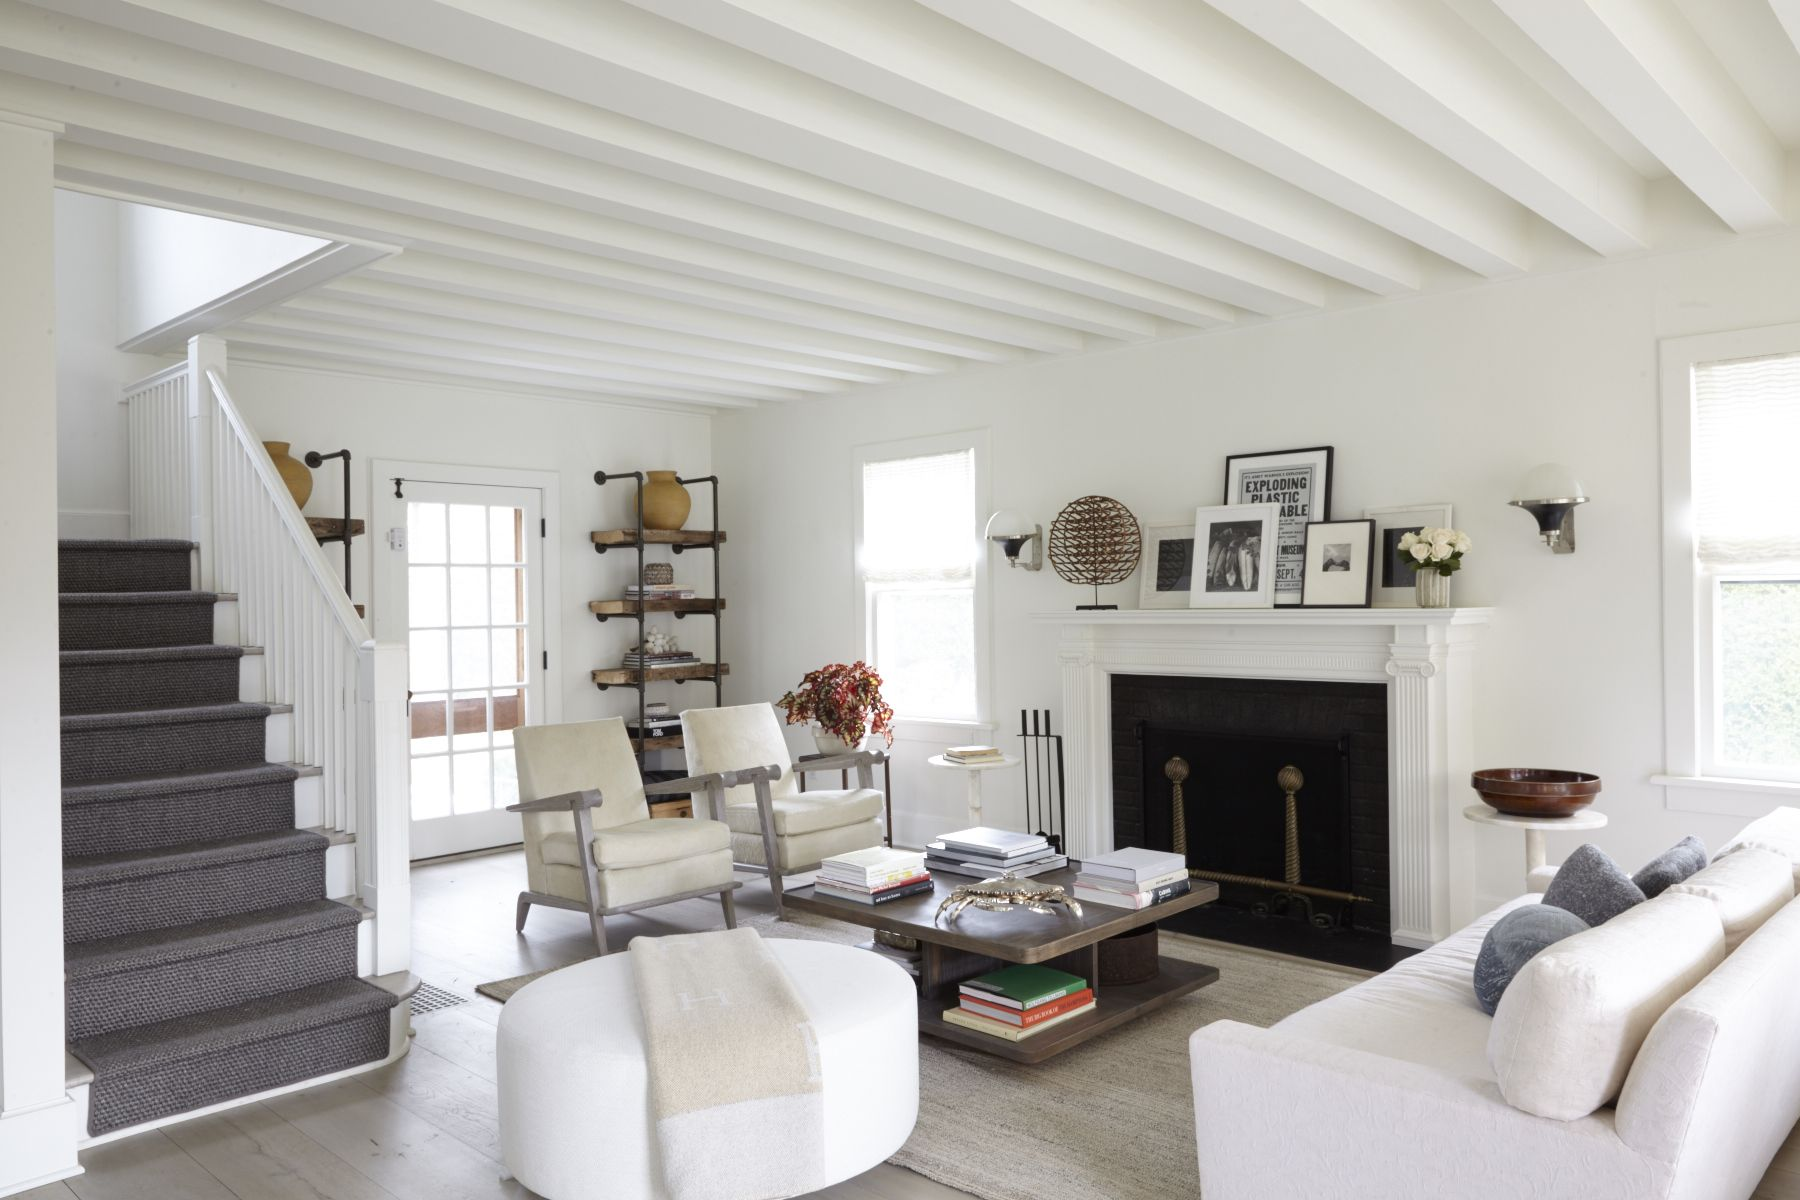 14 Best Modern Farmhouse Living Room Ideas To Try In 2020